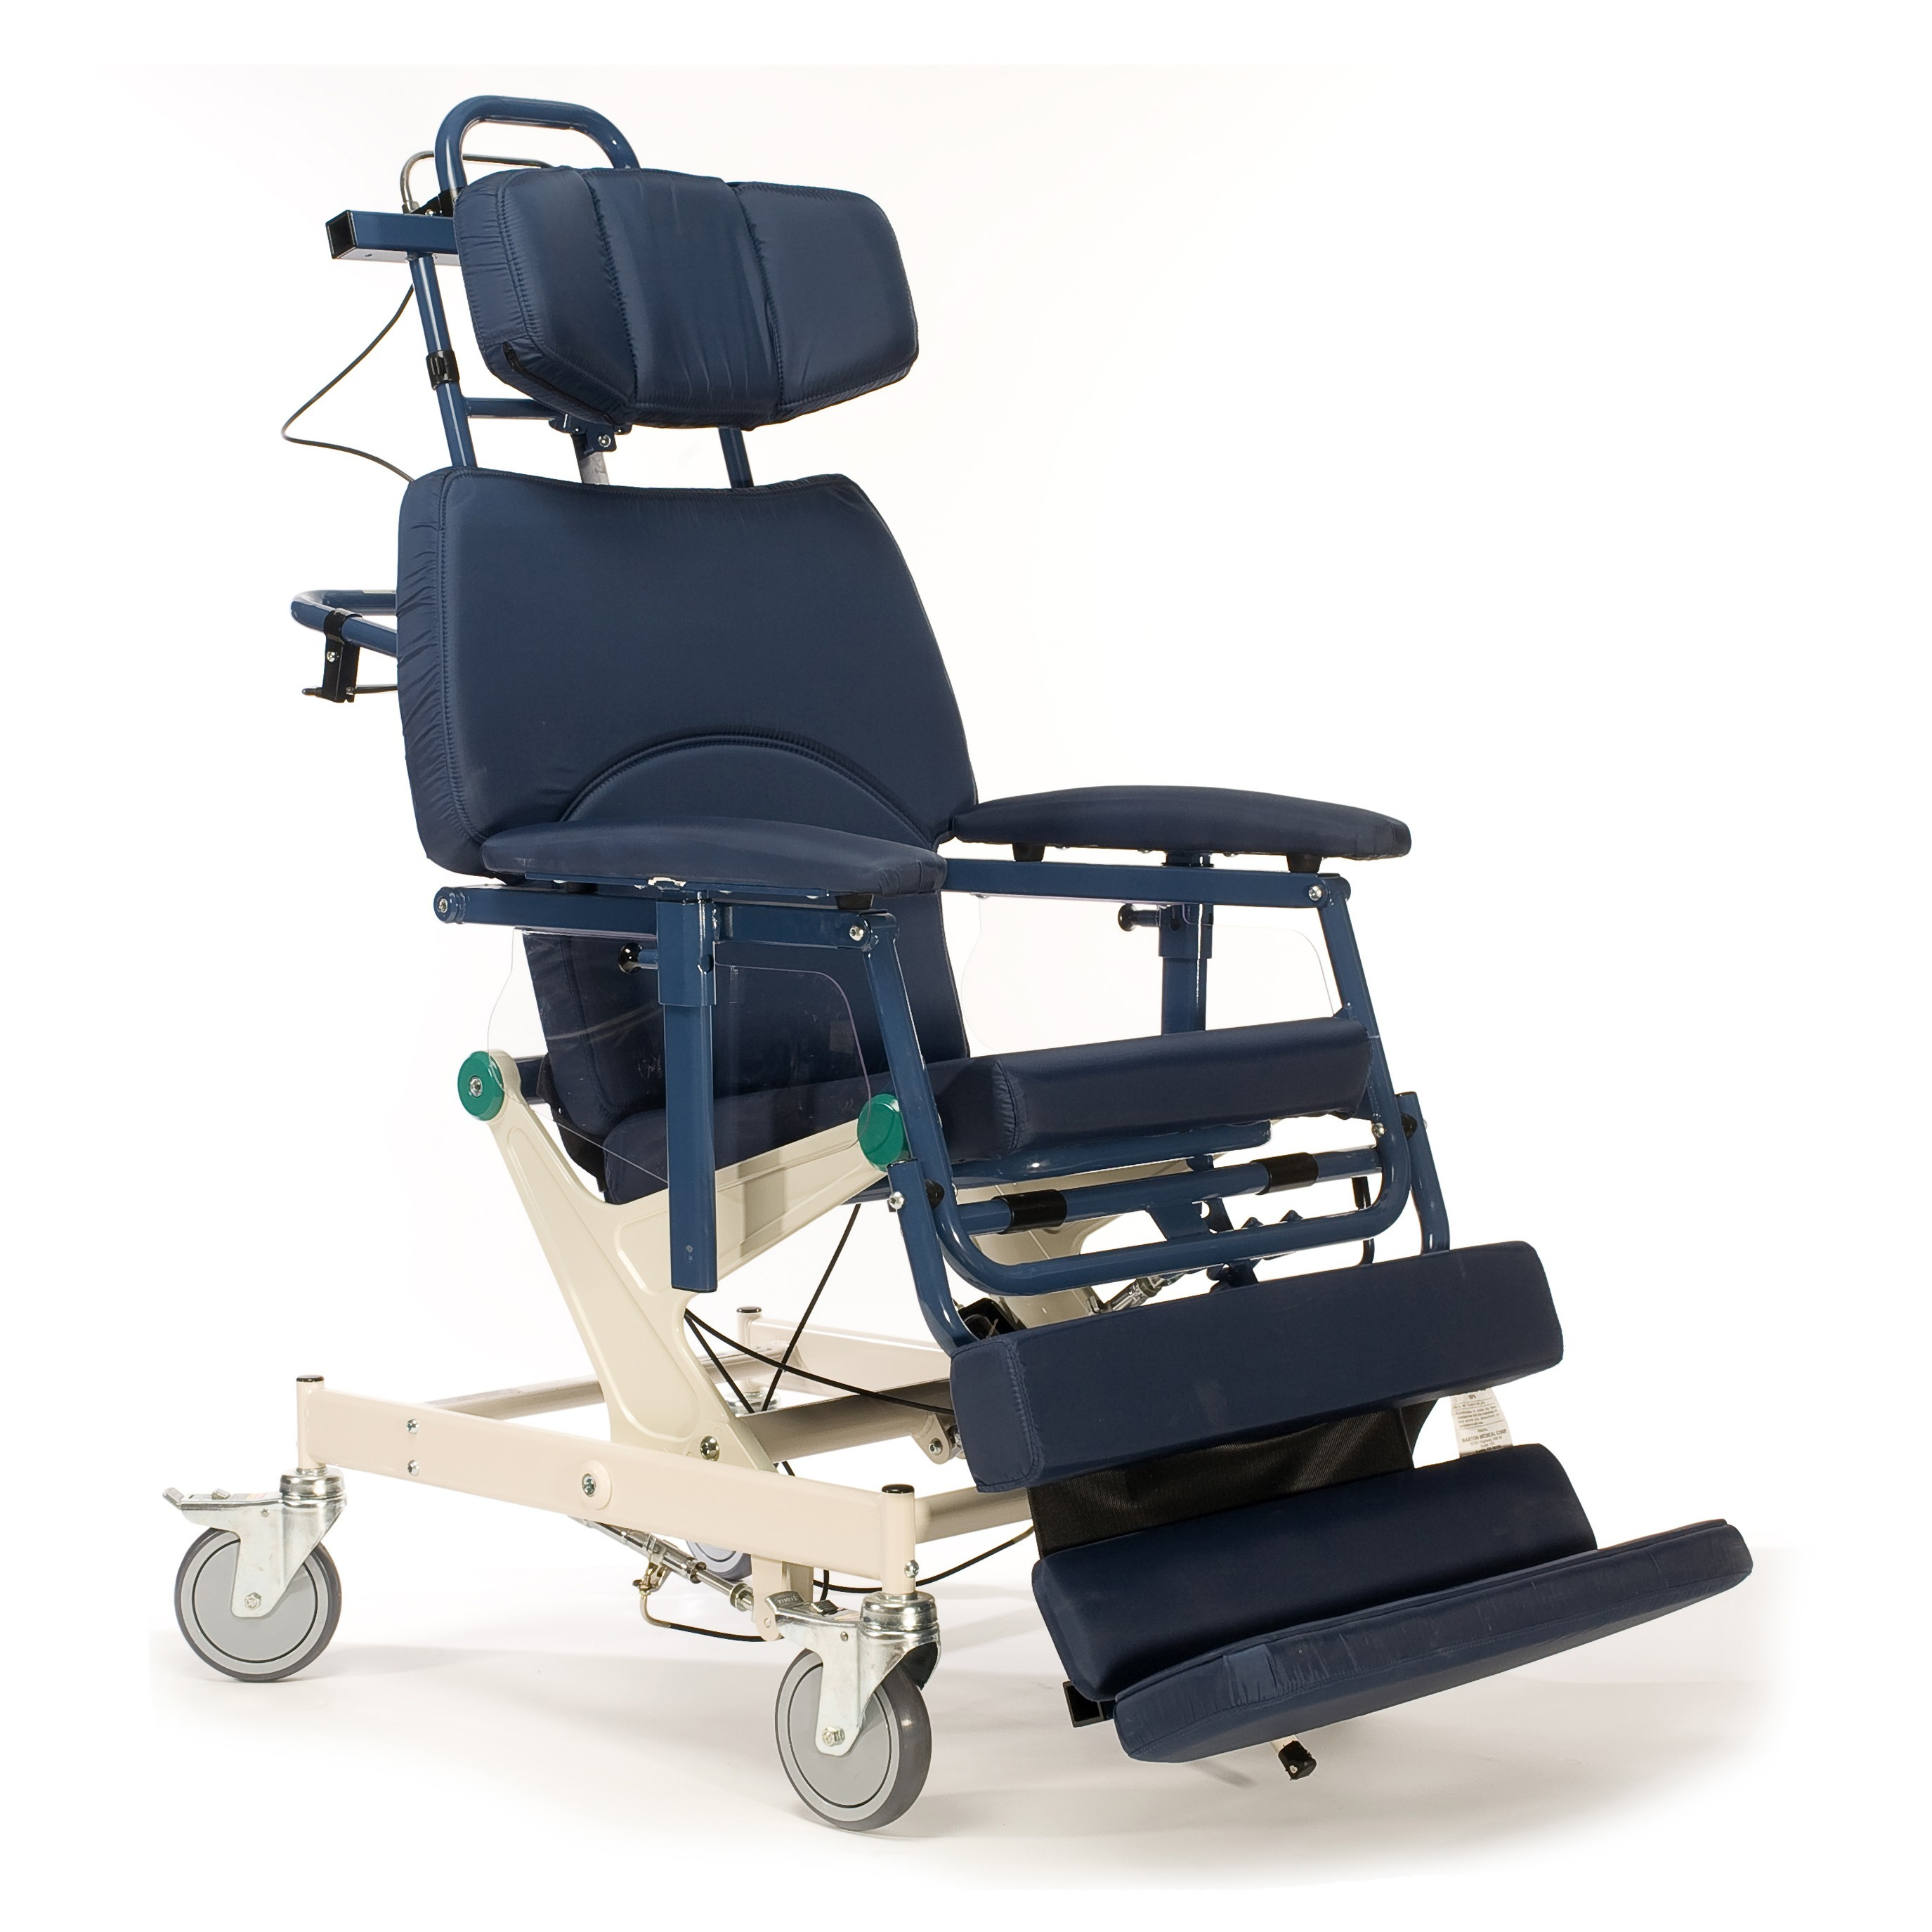 Barton Human Care H-250 Patient Transfer System